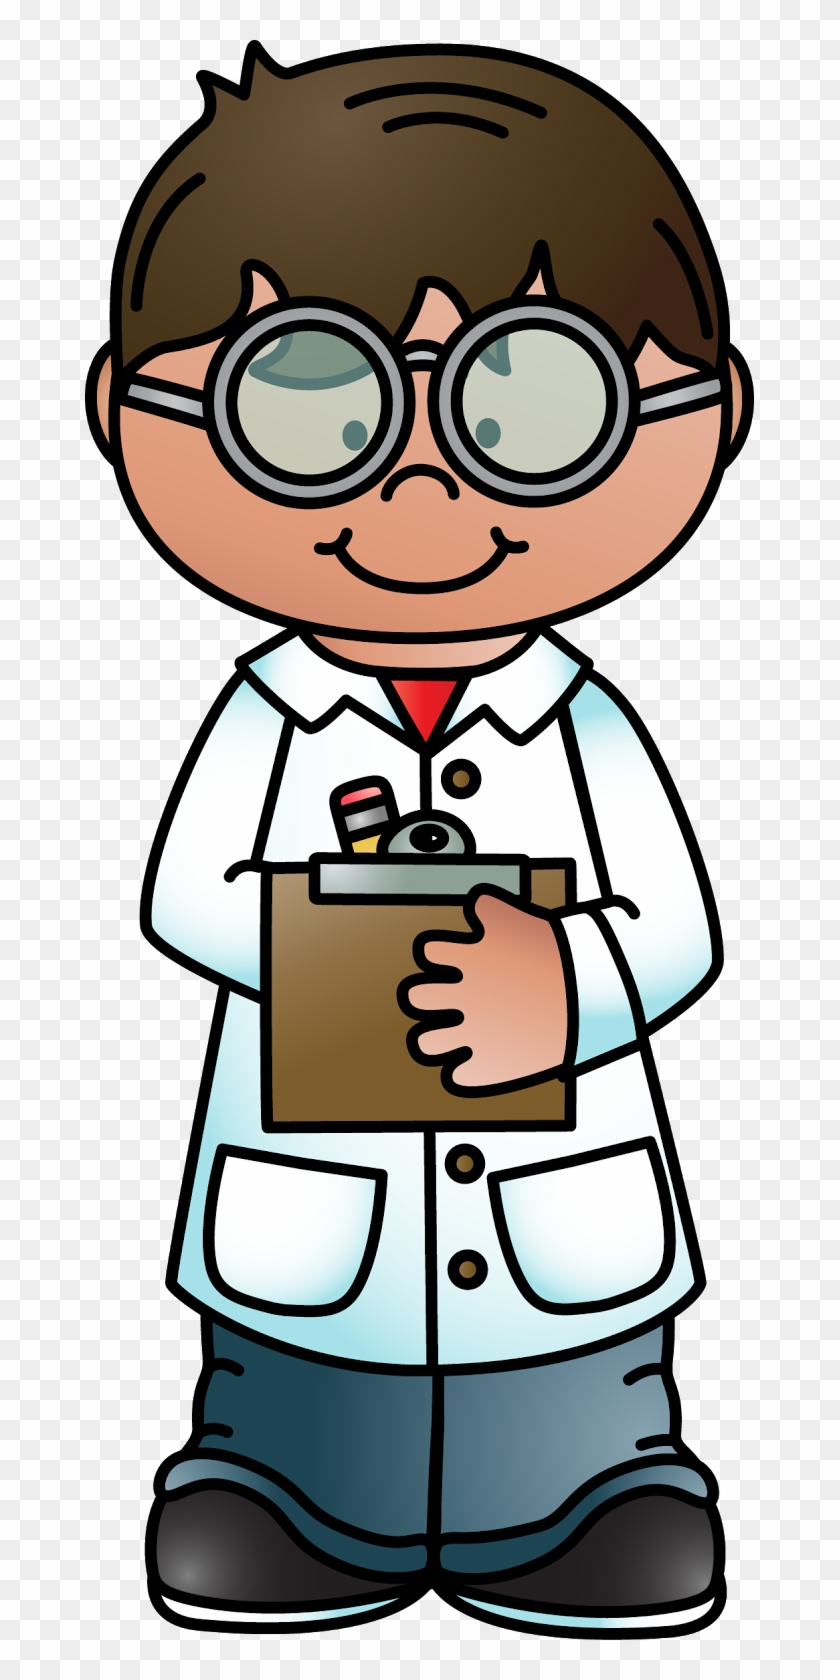 Melonheads Clipart - Teacher - Scientist Taking Notes Clipart #10289